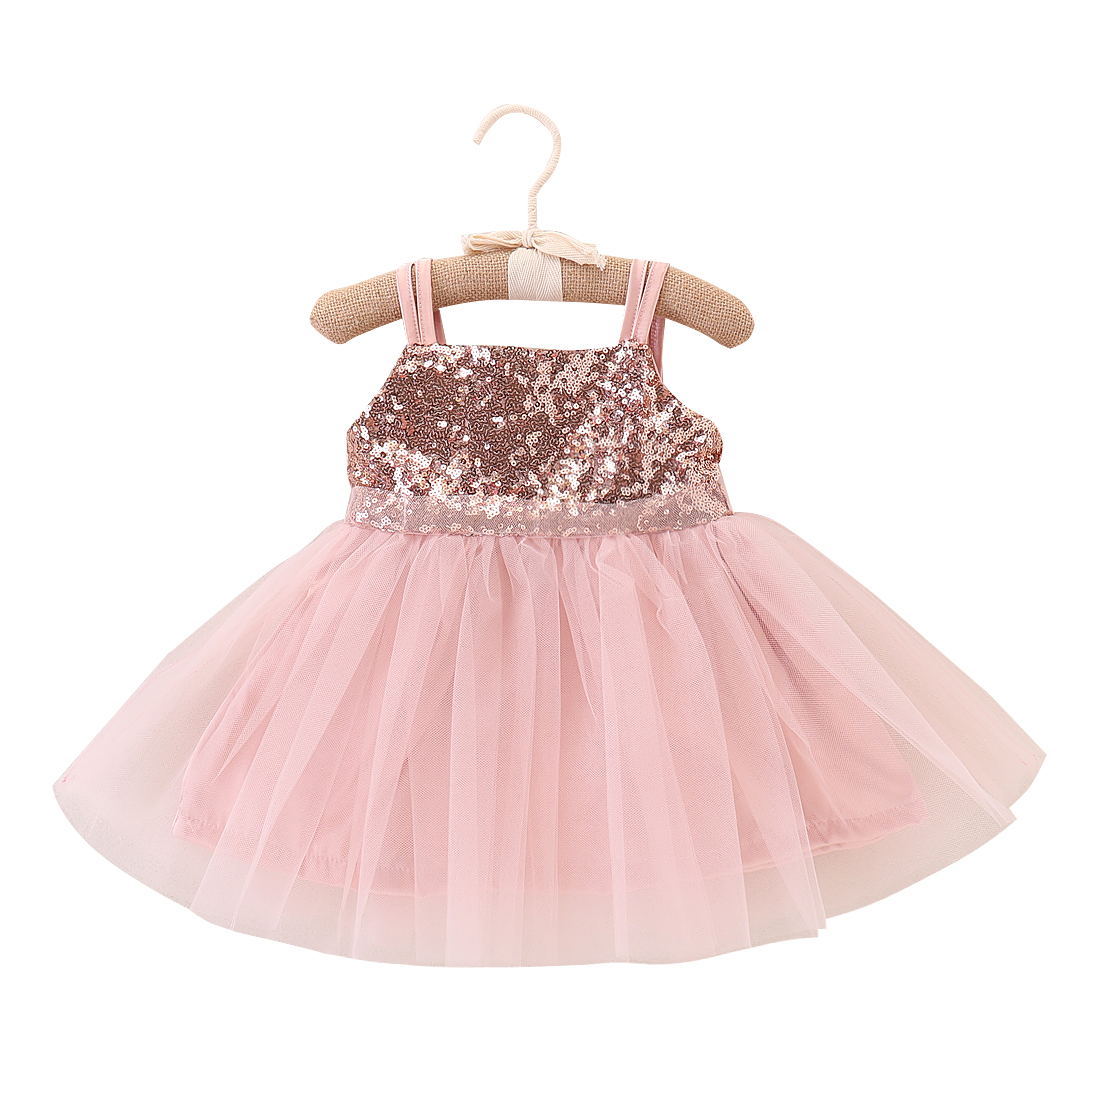 Kid Baby Dresses For Girls 2018 Sequins Bow Tulle Princess Girls Party Wedding Birthday Dresses